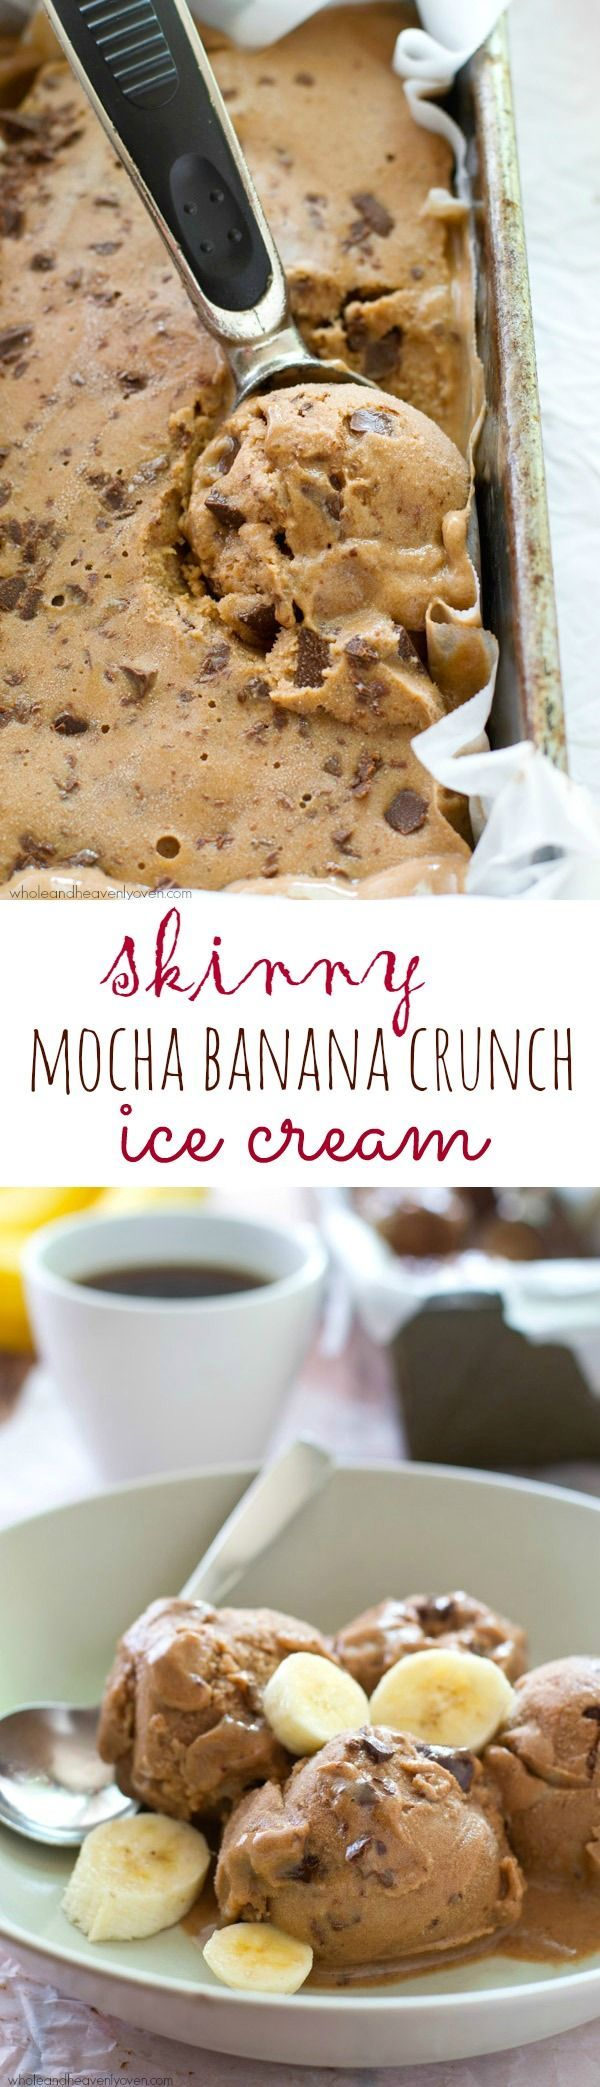 Lots of mocha flavor and a generous portion of crunchy chocolate pieces star in this creamy banana-based ice cream that's secretly healthy and doesn't even require an ice cream maker! @WholeHeavenly